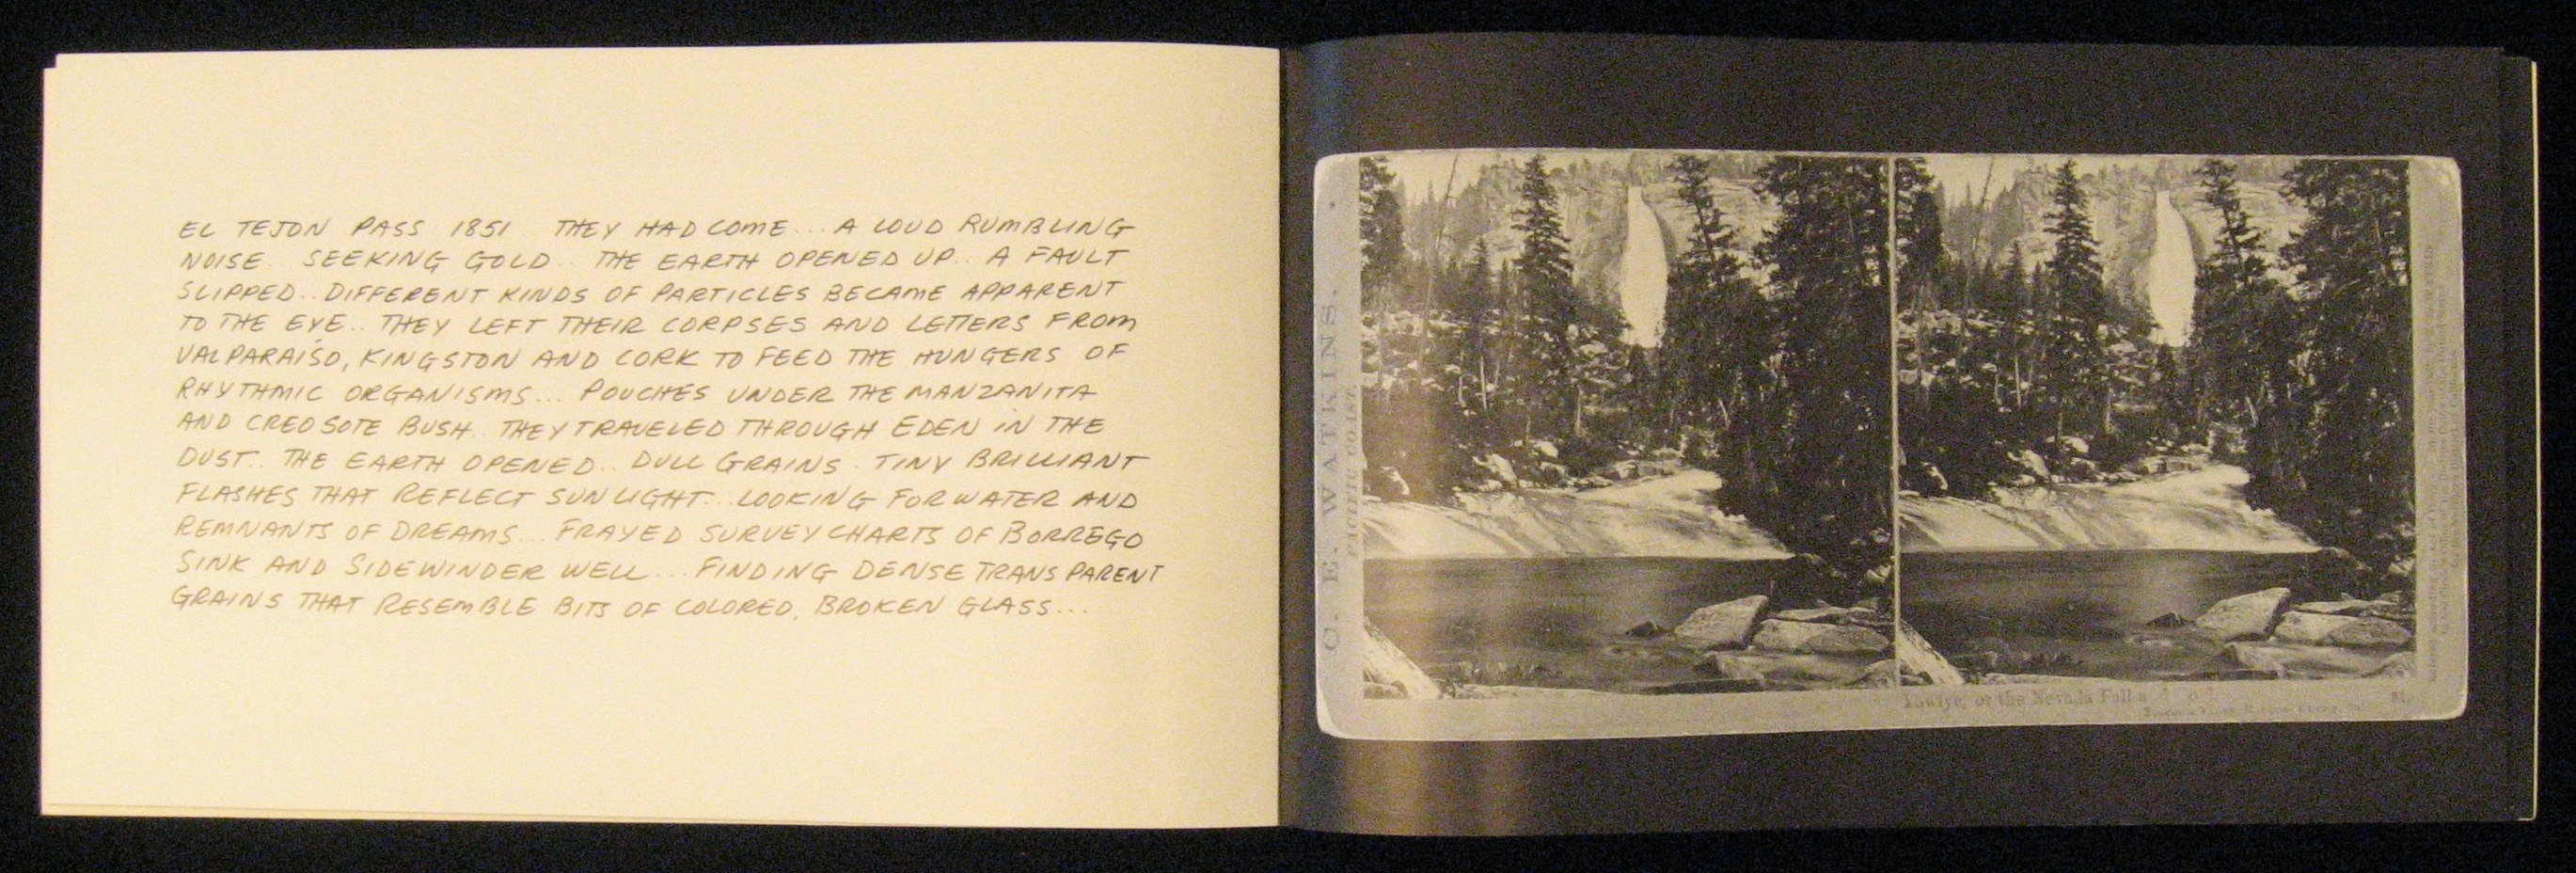 Page spread with text on the verso side and a black and white photo on the recto.